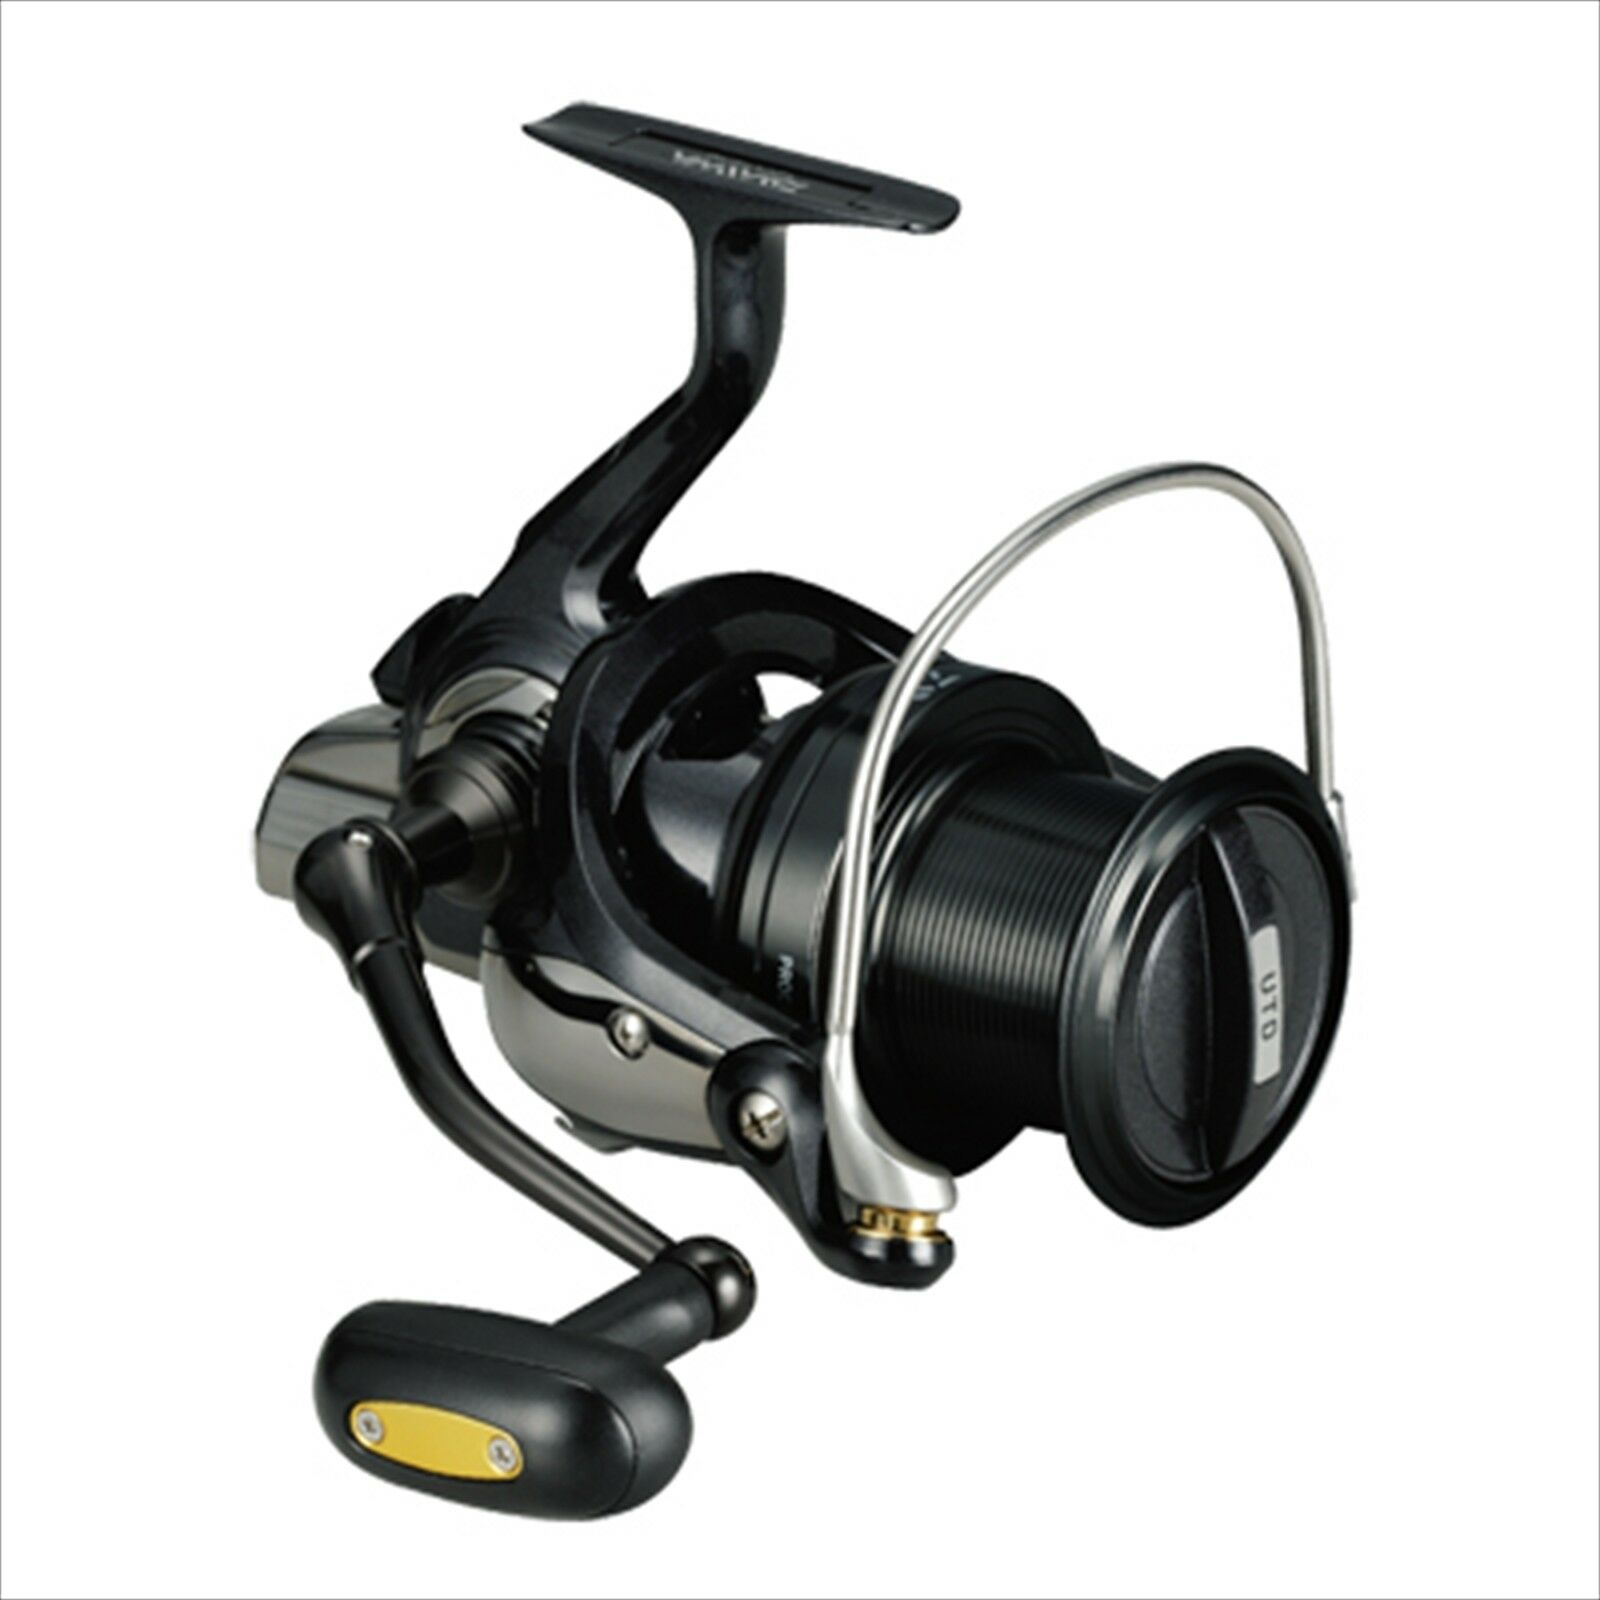 Daiwa Procago 4500 Long Distance Spinning Reel Japan